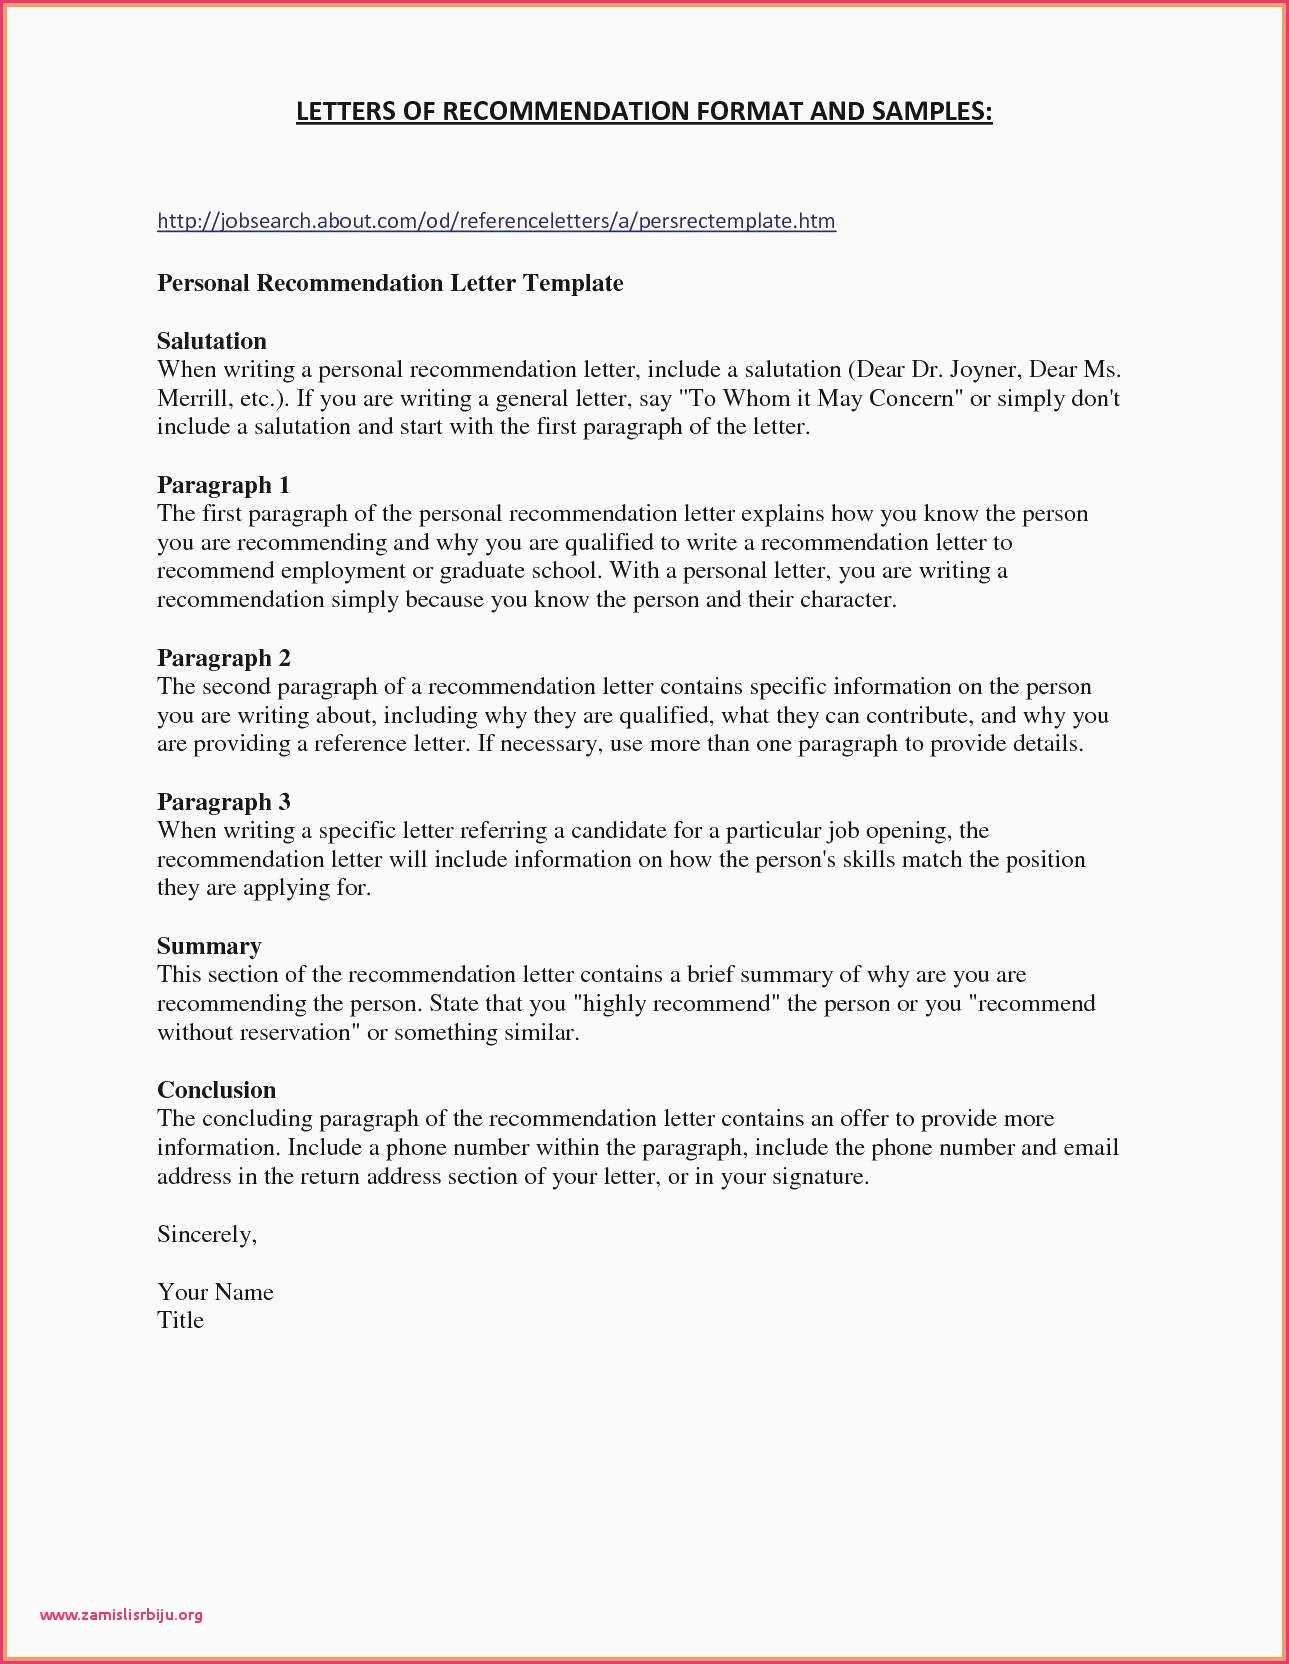 My Perfect Resume Customer Service Number - My Perfect Resume Cover Letter Elegant My Perfect Resume Phone